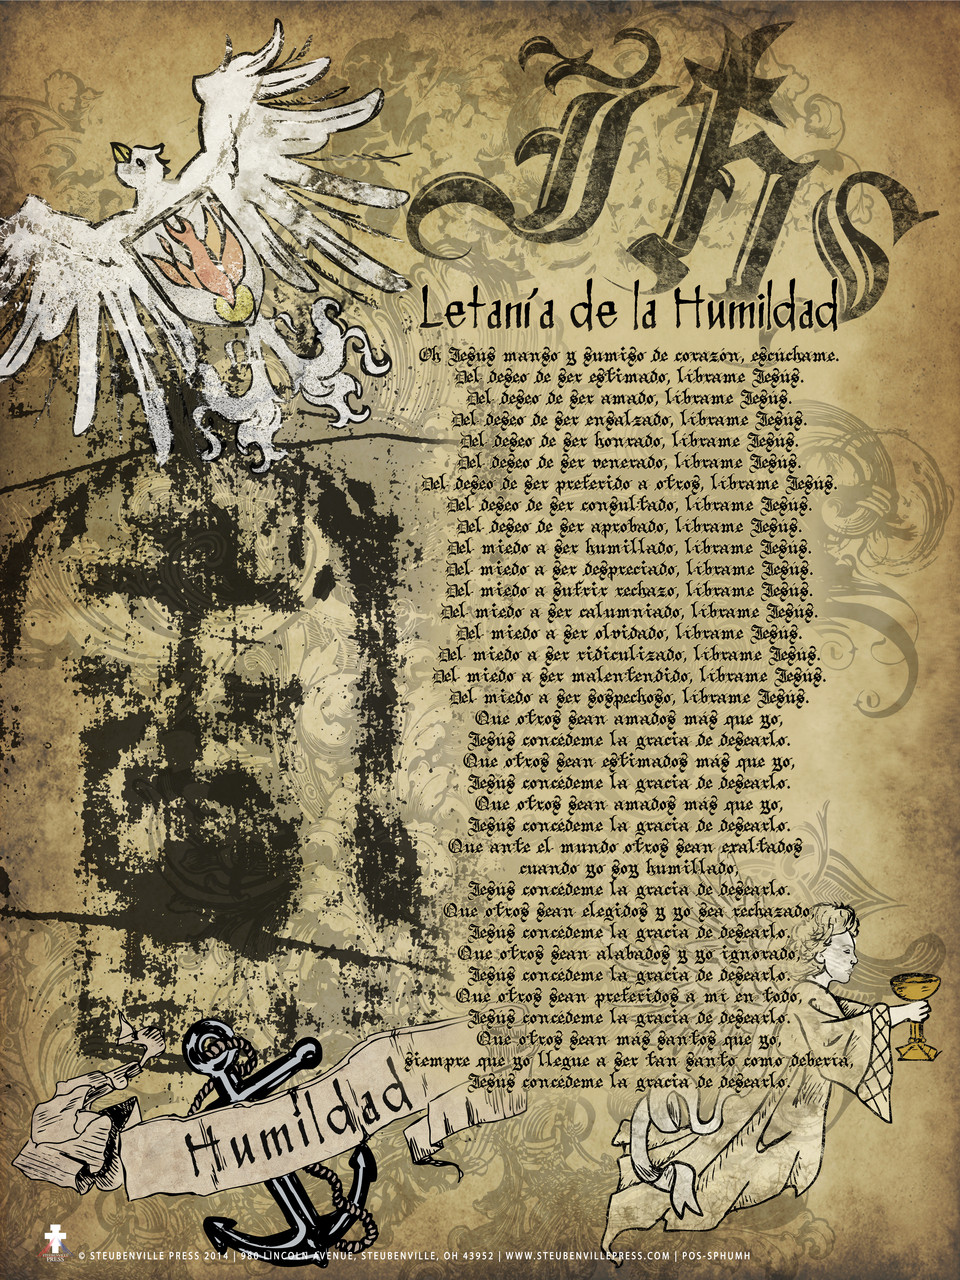 photo about Litany of Humility Printable called Spanish Lit. of Humility Poster